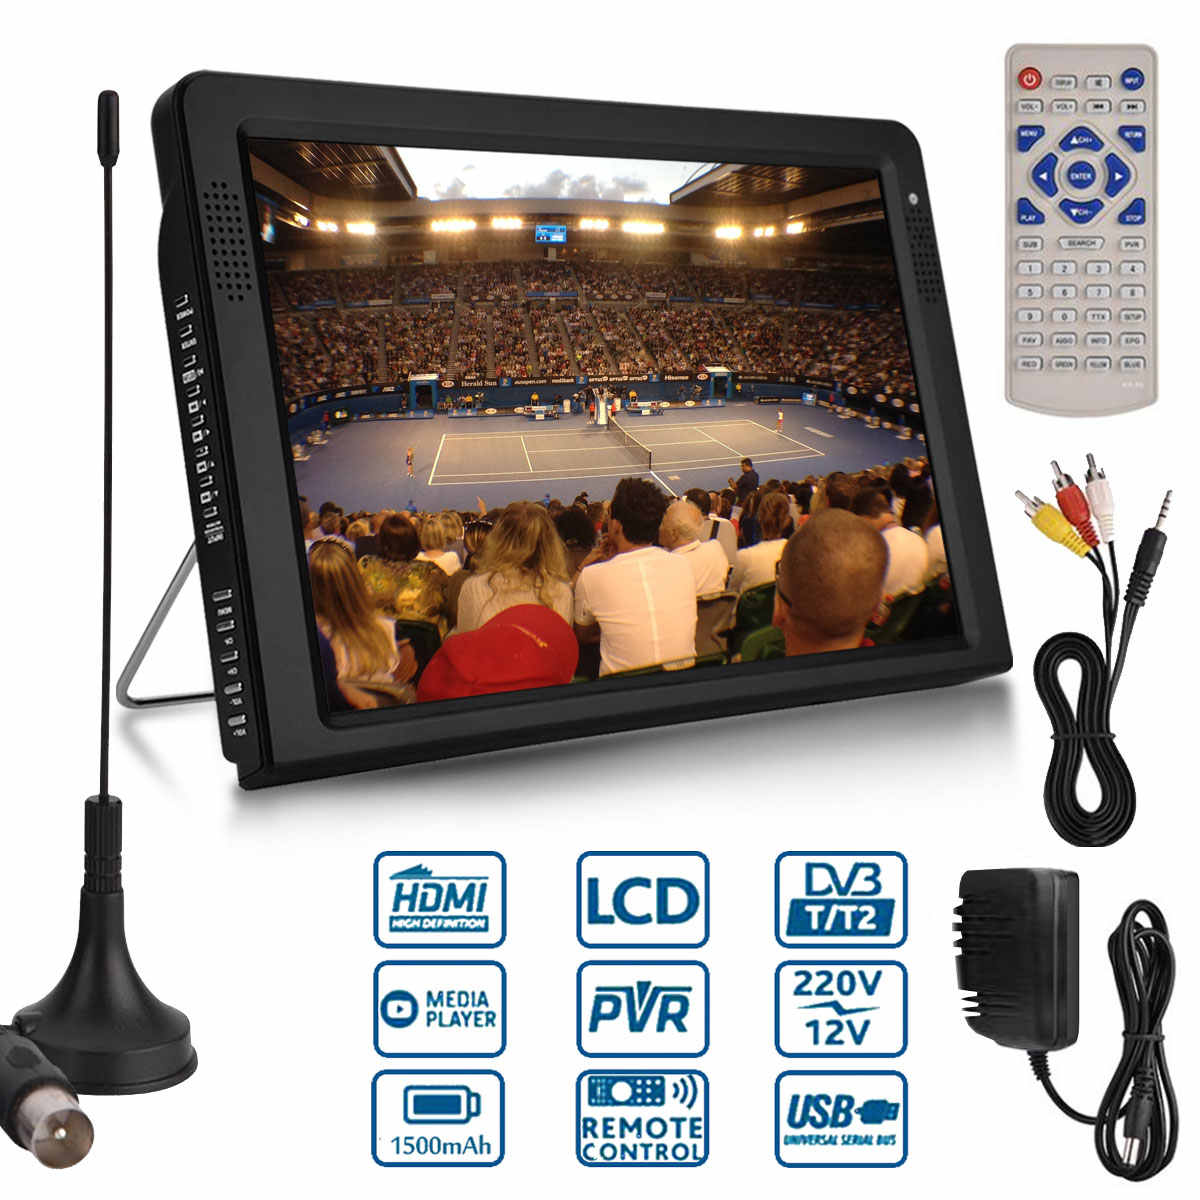 10.2 Inci 1080P PVR 12V Portable Dvb-t/DVB-T2 TFT LED HD TV Televisi Analog Digital AC/ DC